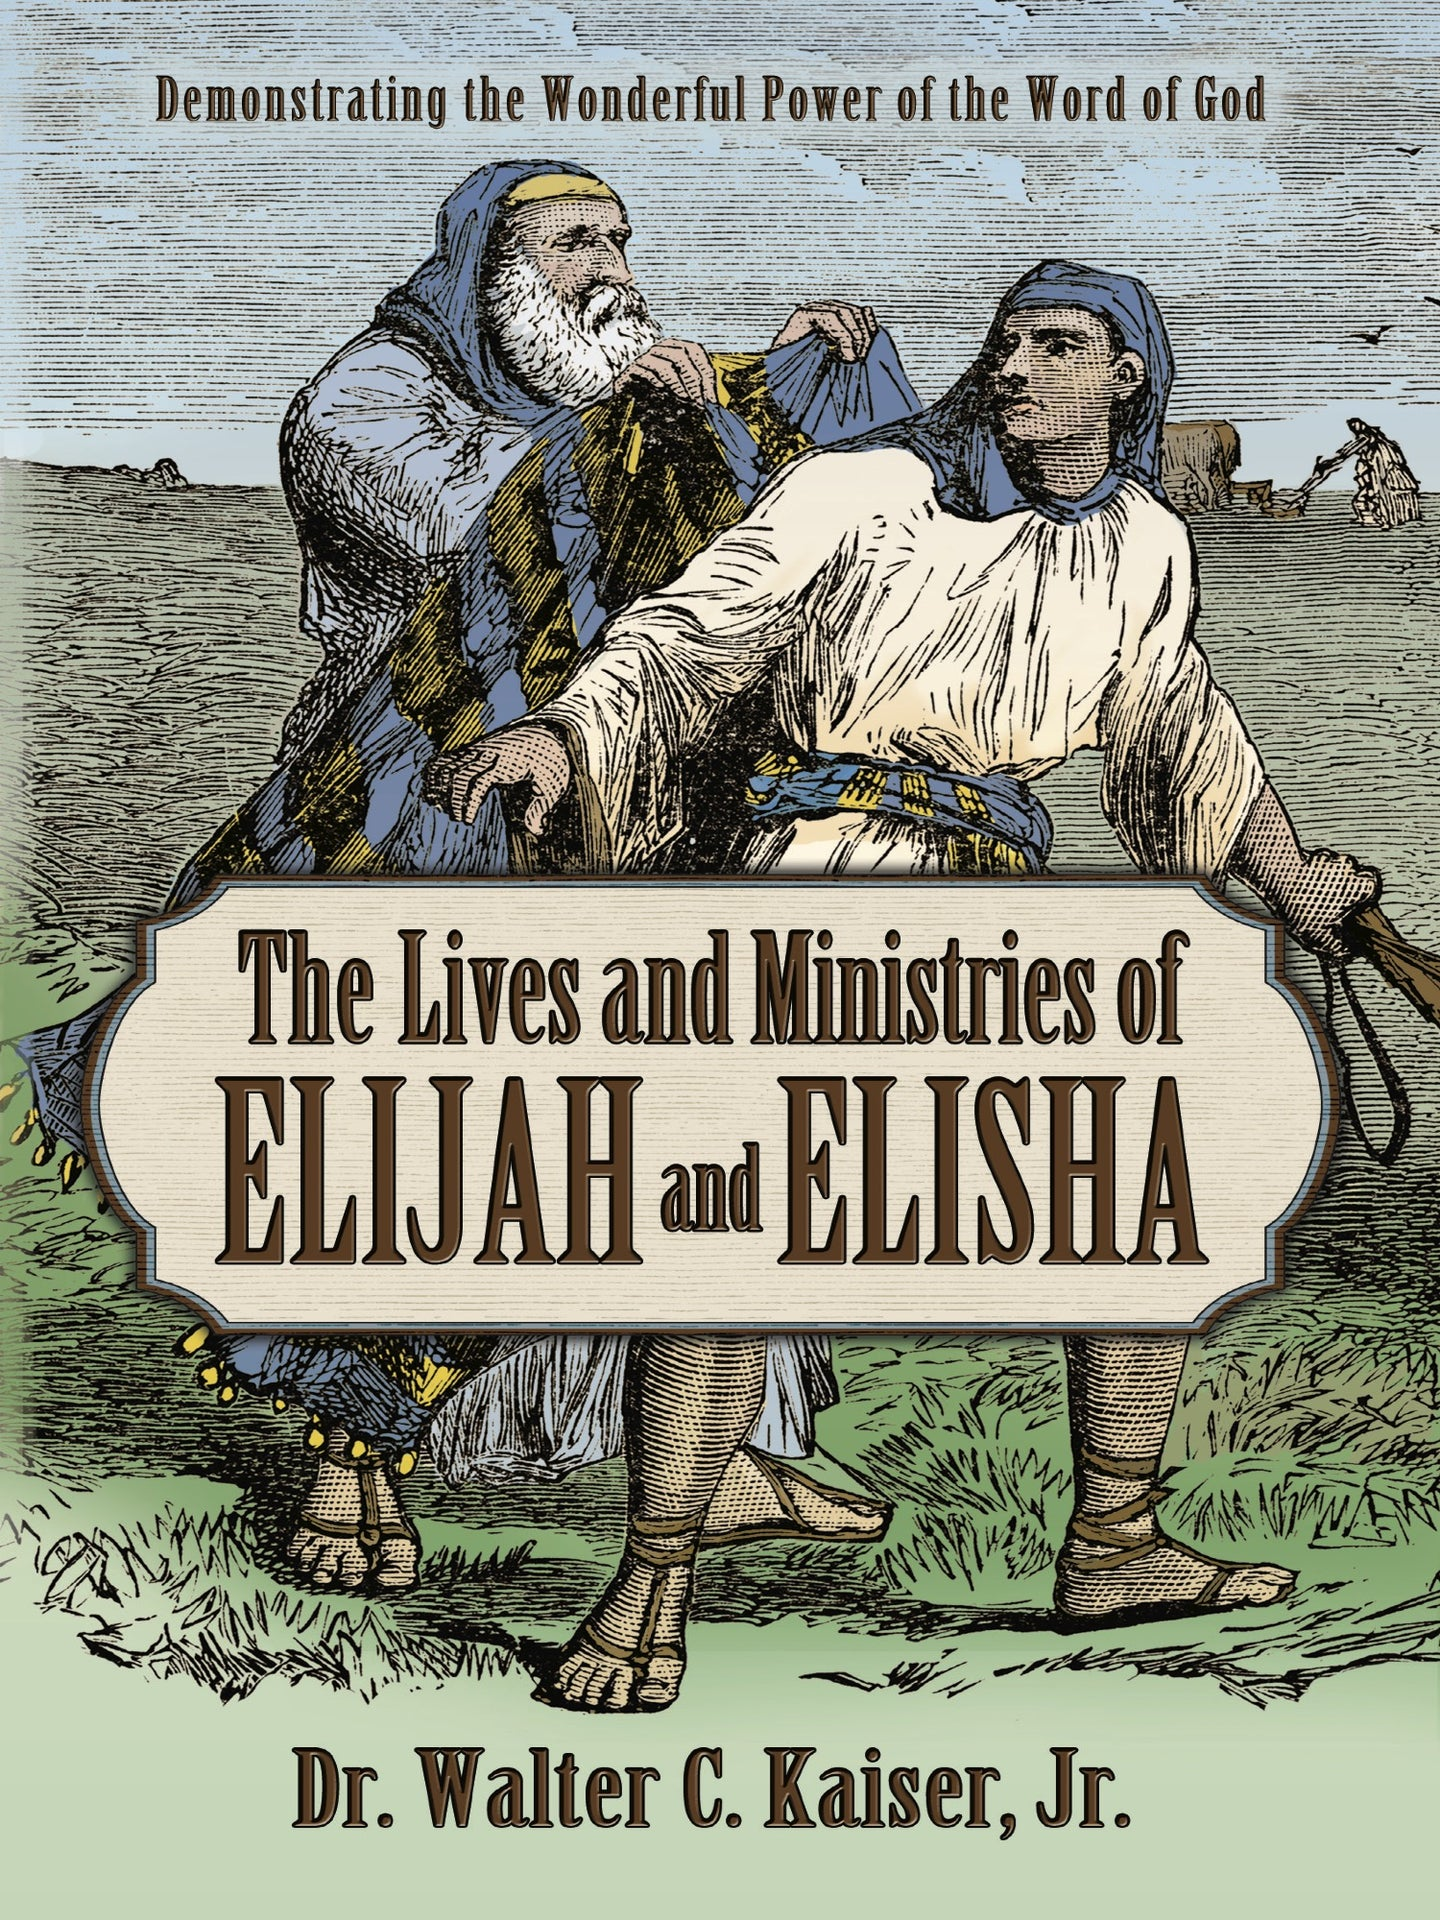 The Lives and Ministries of Elijah and Elisha by Dr. Walter C. Kaiser, Jr.